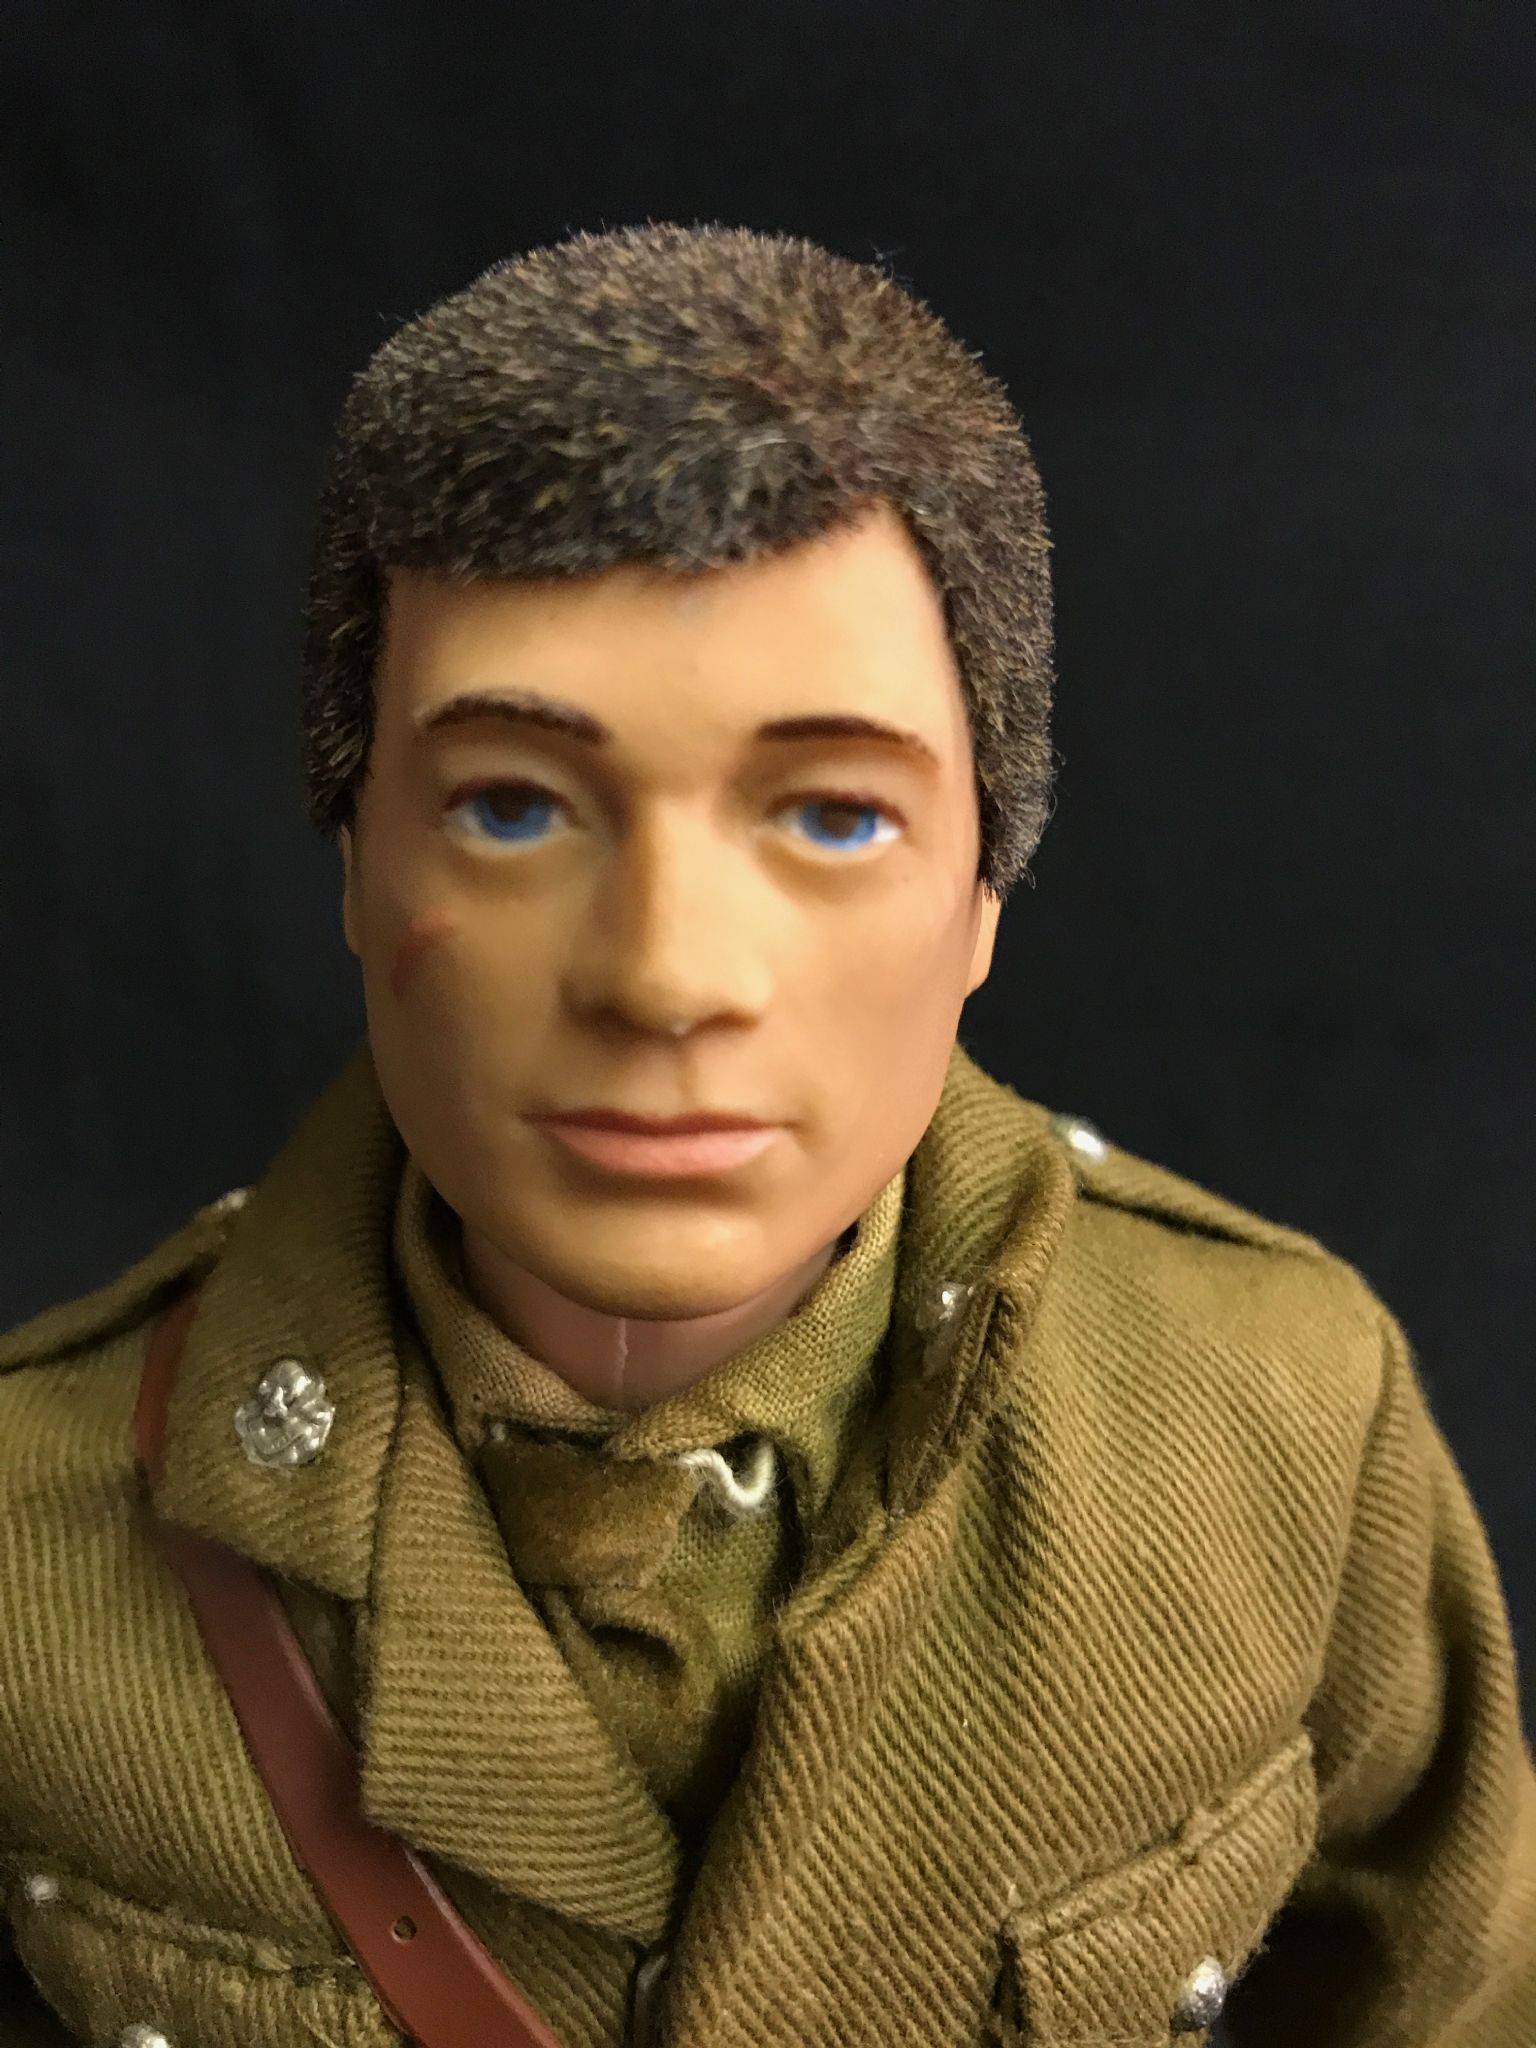 ACTION MAN VINTAGE ACTION MAN BRITISH ARMY OFFICER Ref - British army hairstyle